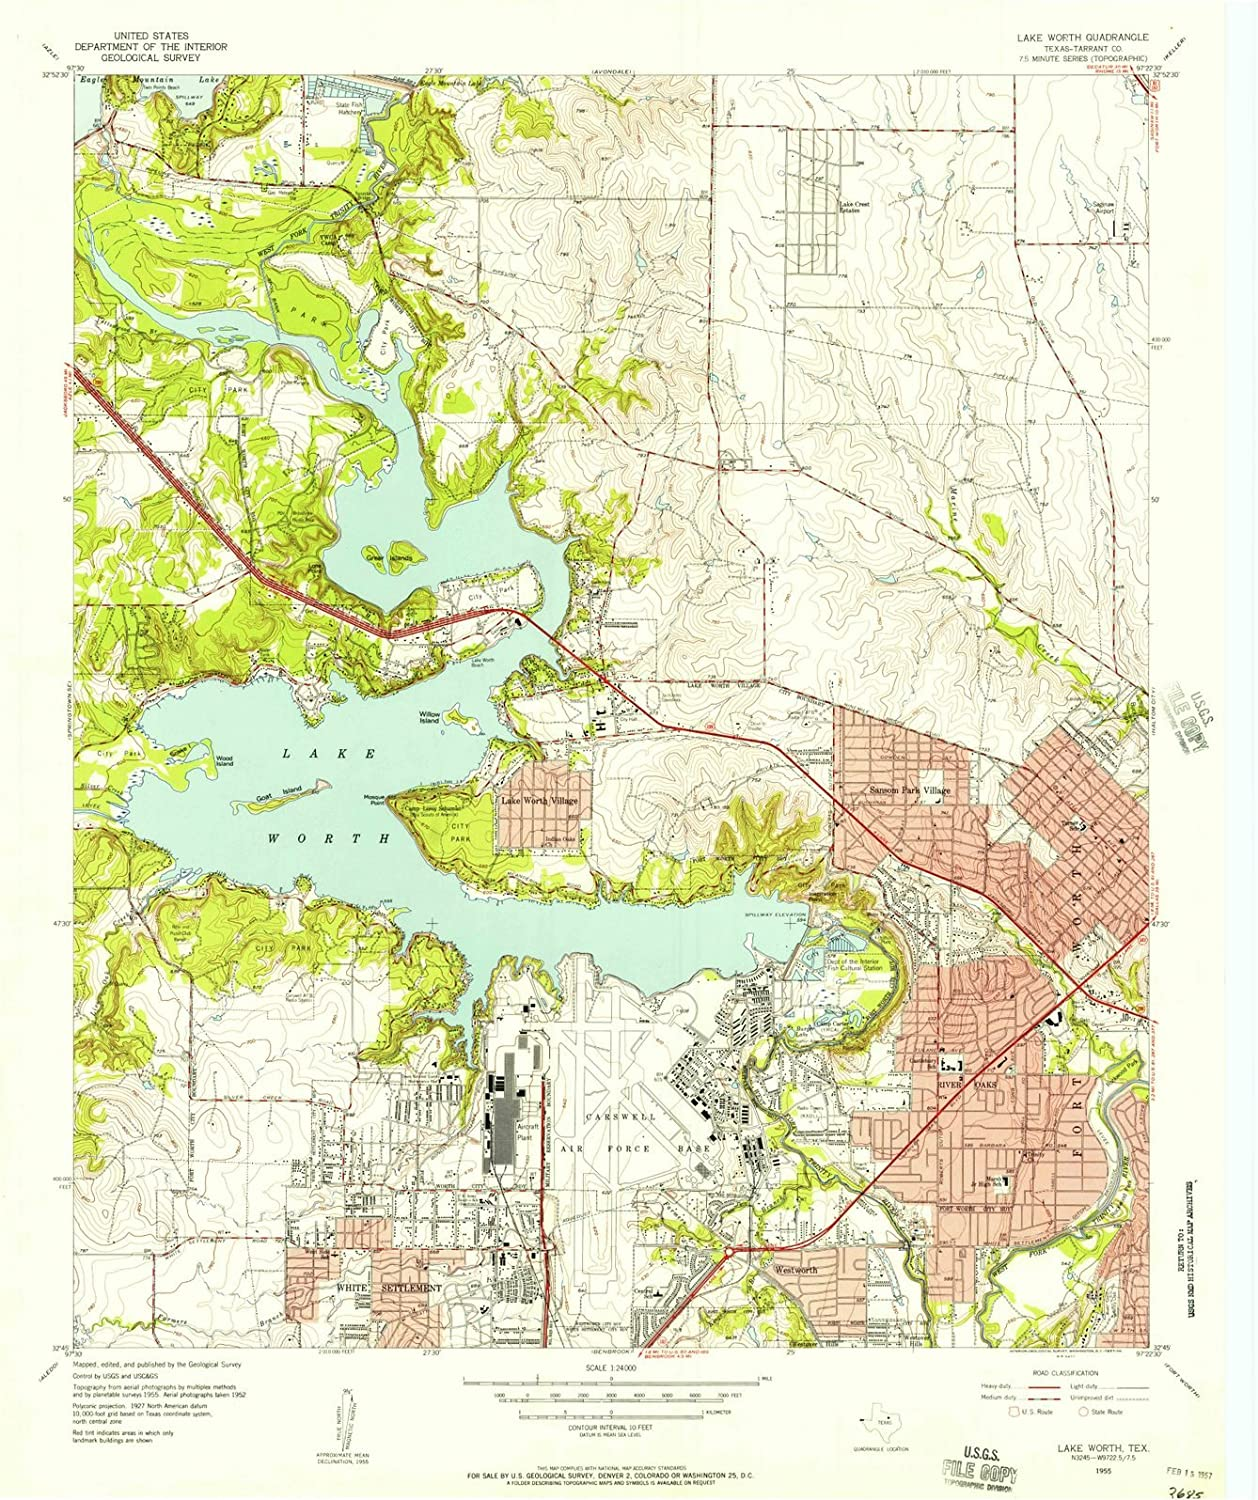 map of lake worth tx Texas Maps 1955 Lake Worth Tx Usgs Historical Topographic Map map of lake worth tx